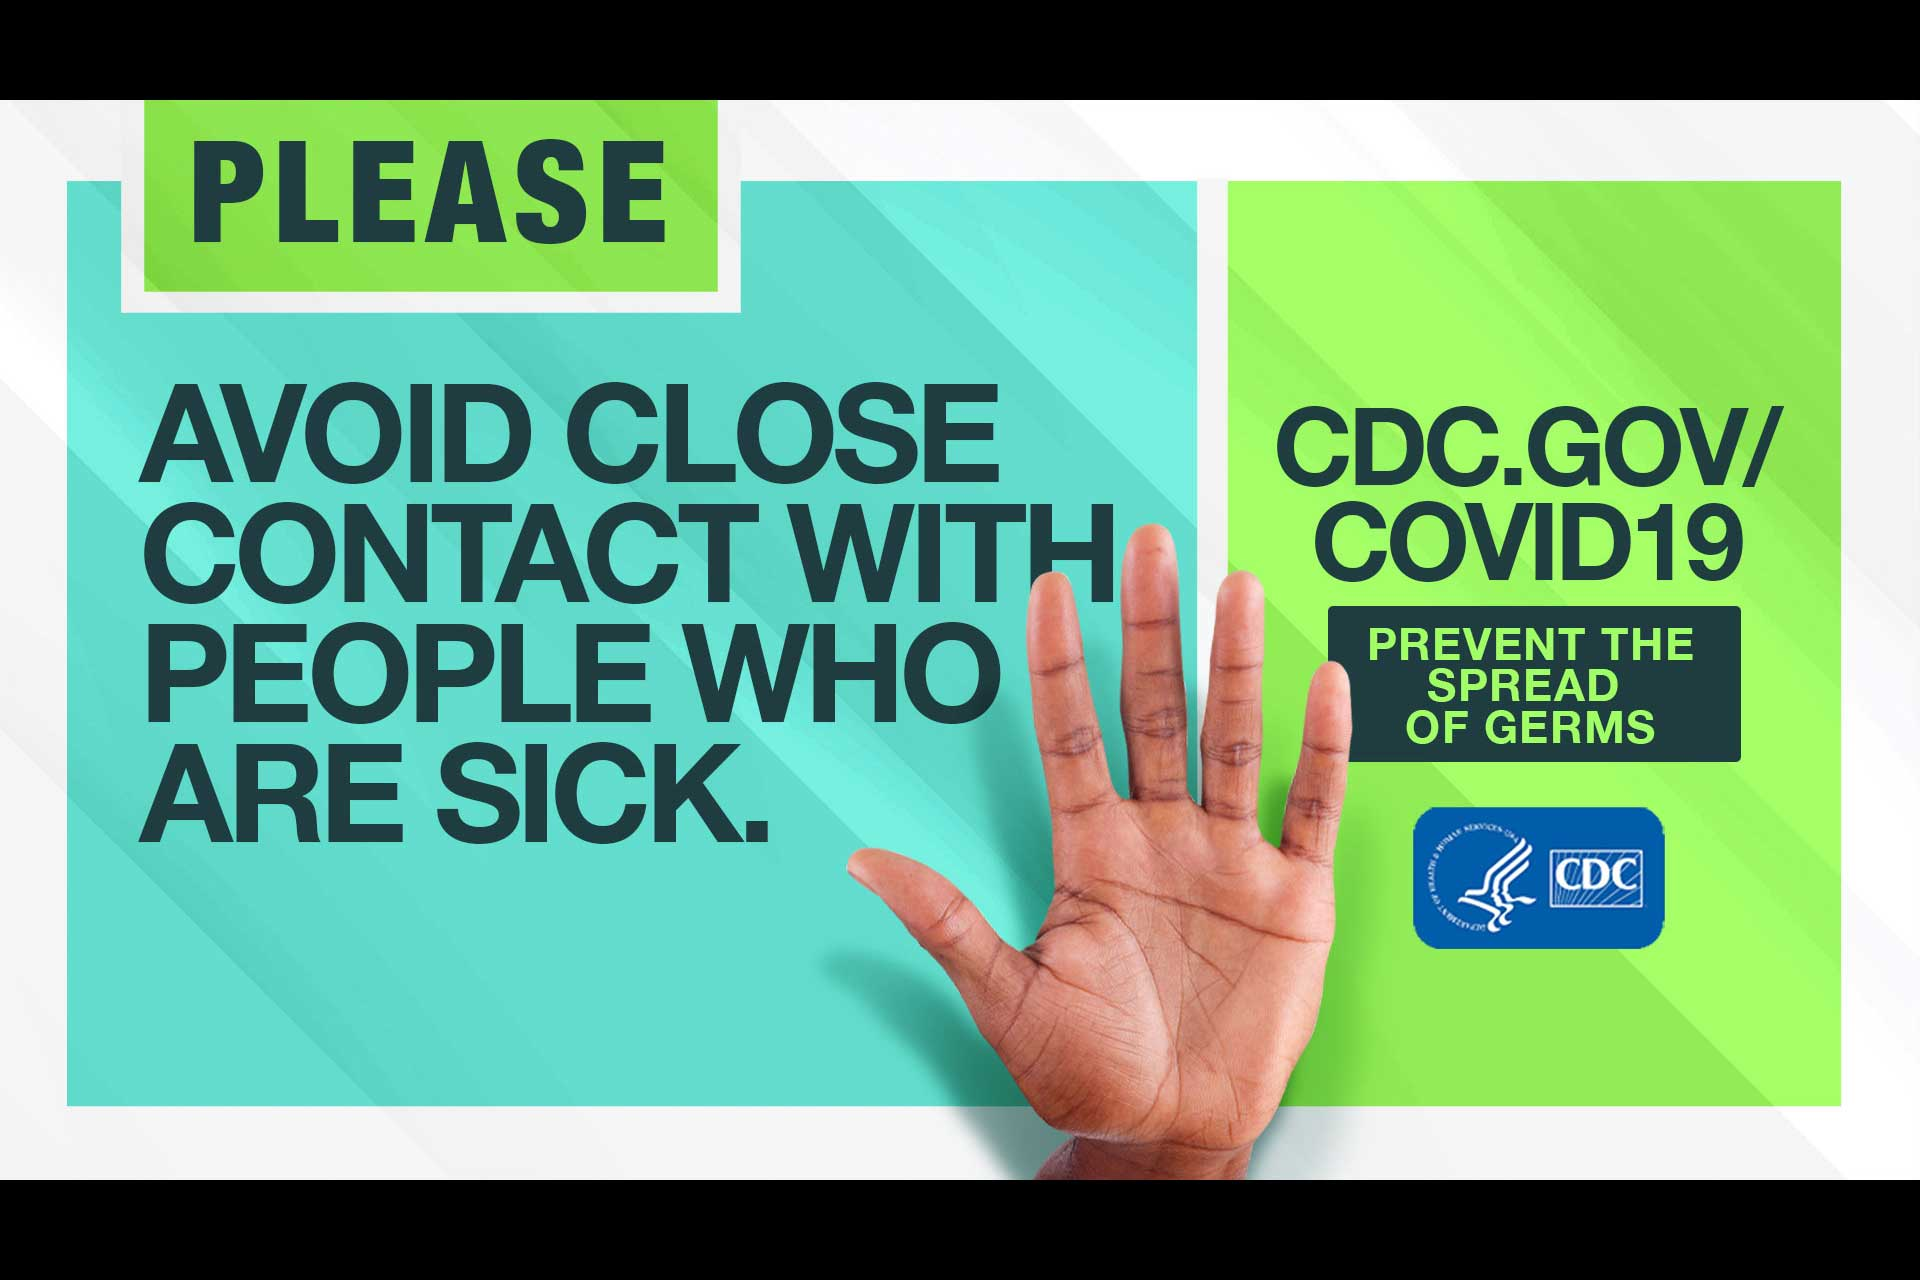 Coronavirus outbreak pandemic COVID-19 disease CDC Centers for Disease Control and Prevention OAAA out of home OOH Out of Home Advertising Association of America billboards digital PSA